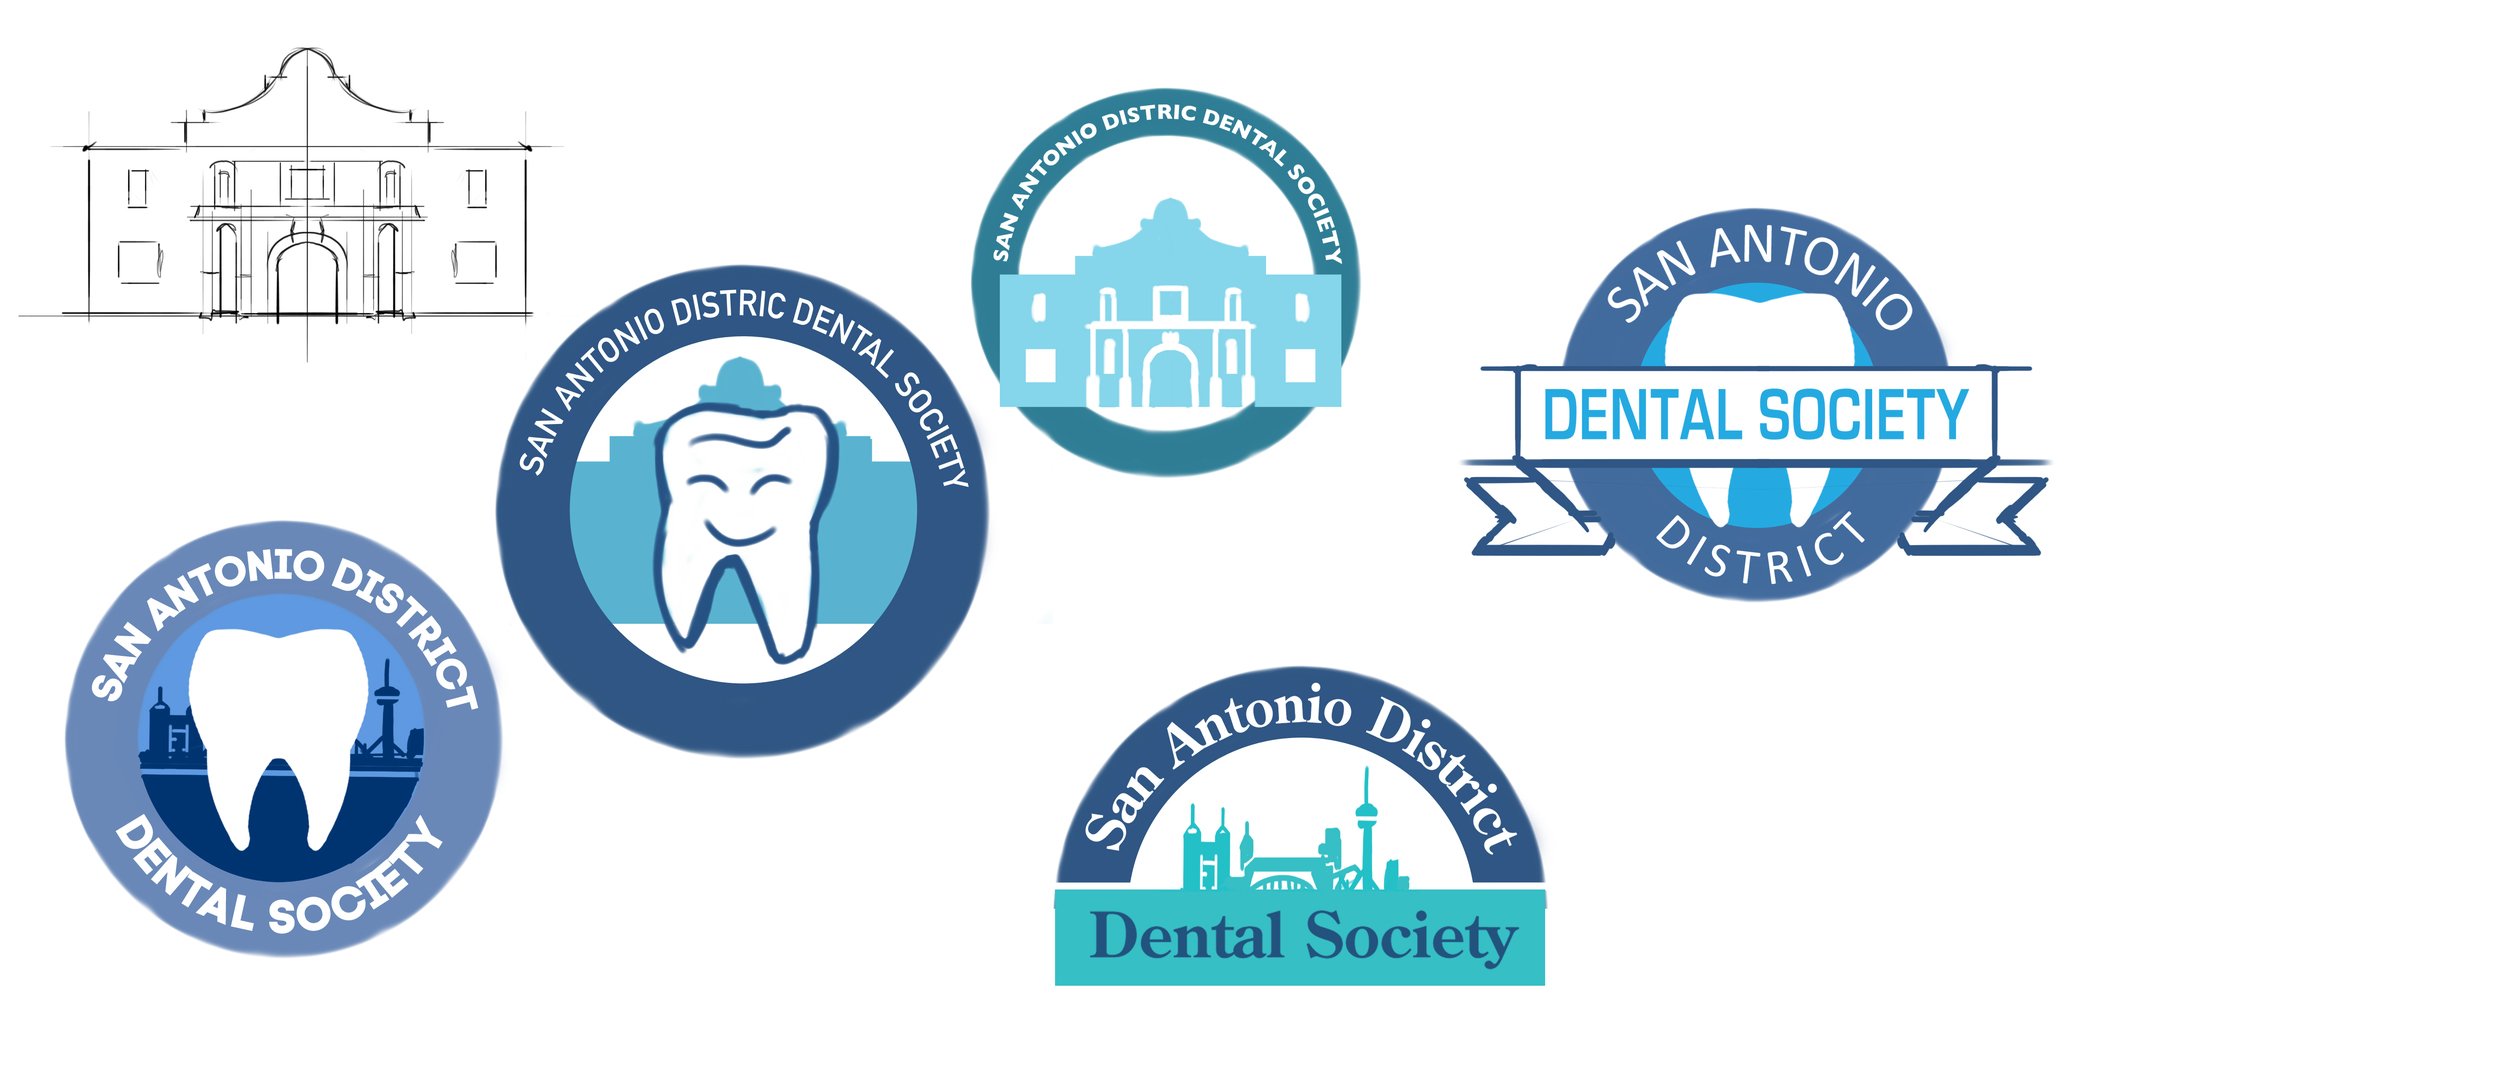 San Antonio dental society logo.jpg